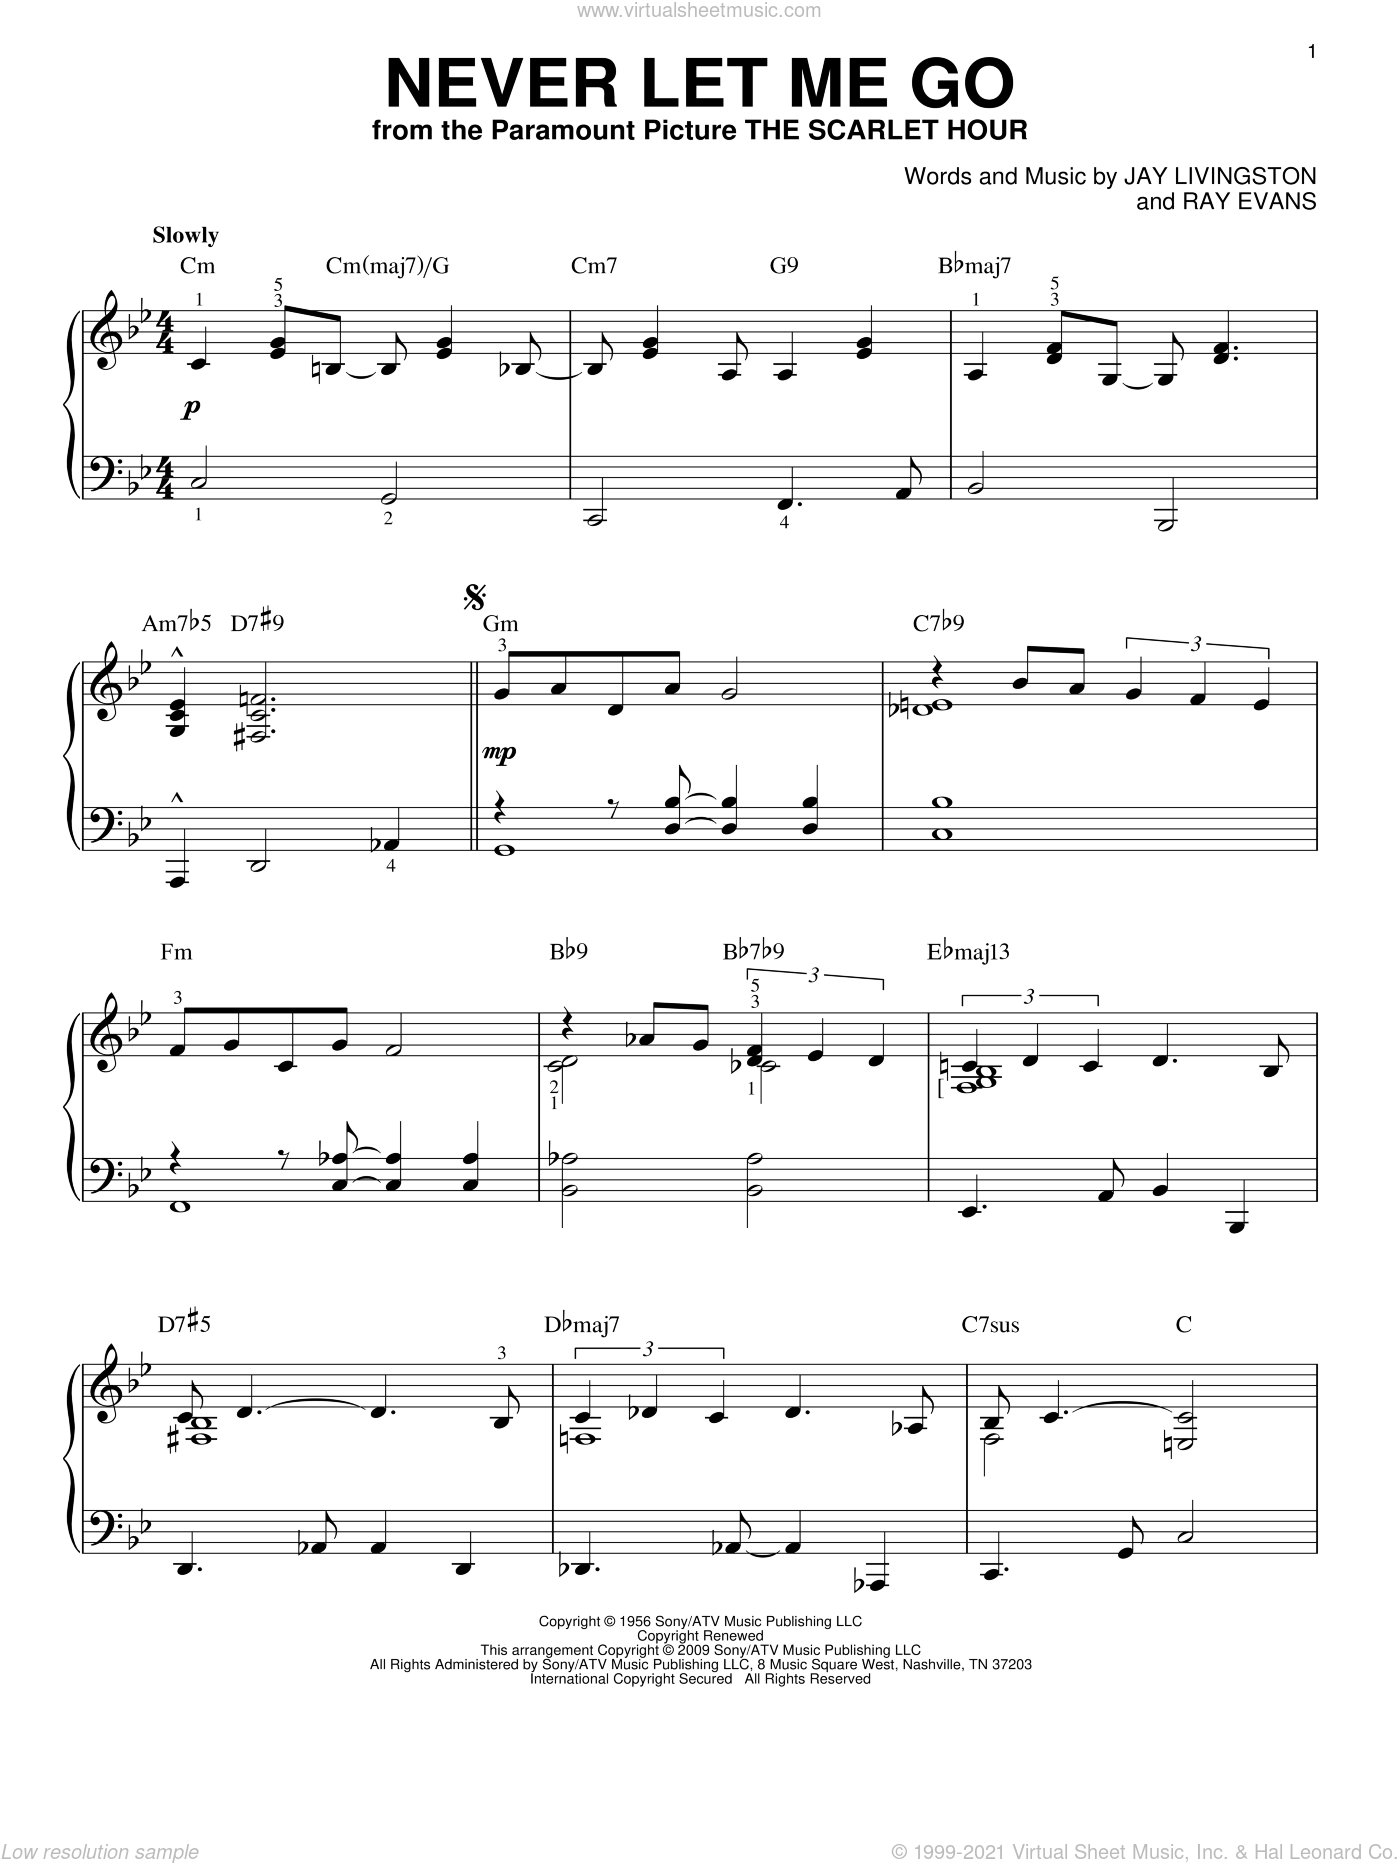 Never Let Me Go sheet music for piano solo by Dinah Washington, Jay Livingston and Ray Evans, intermediate skill level